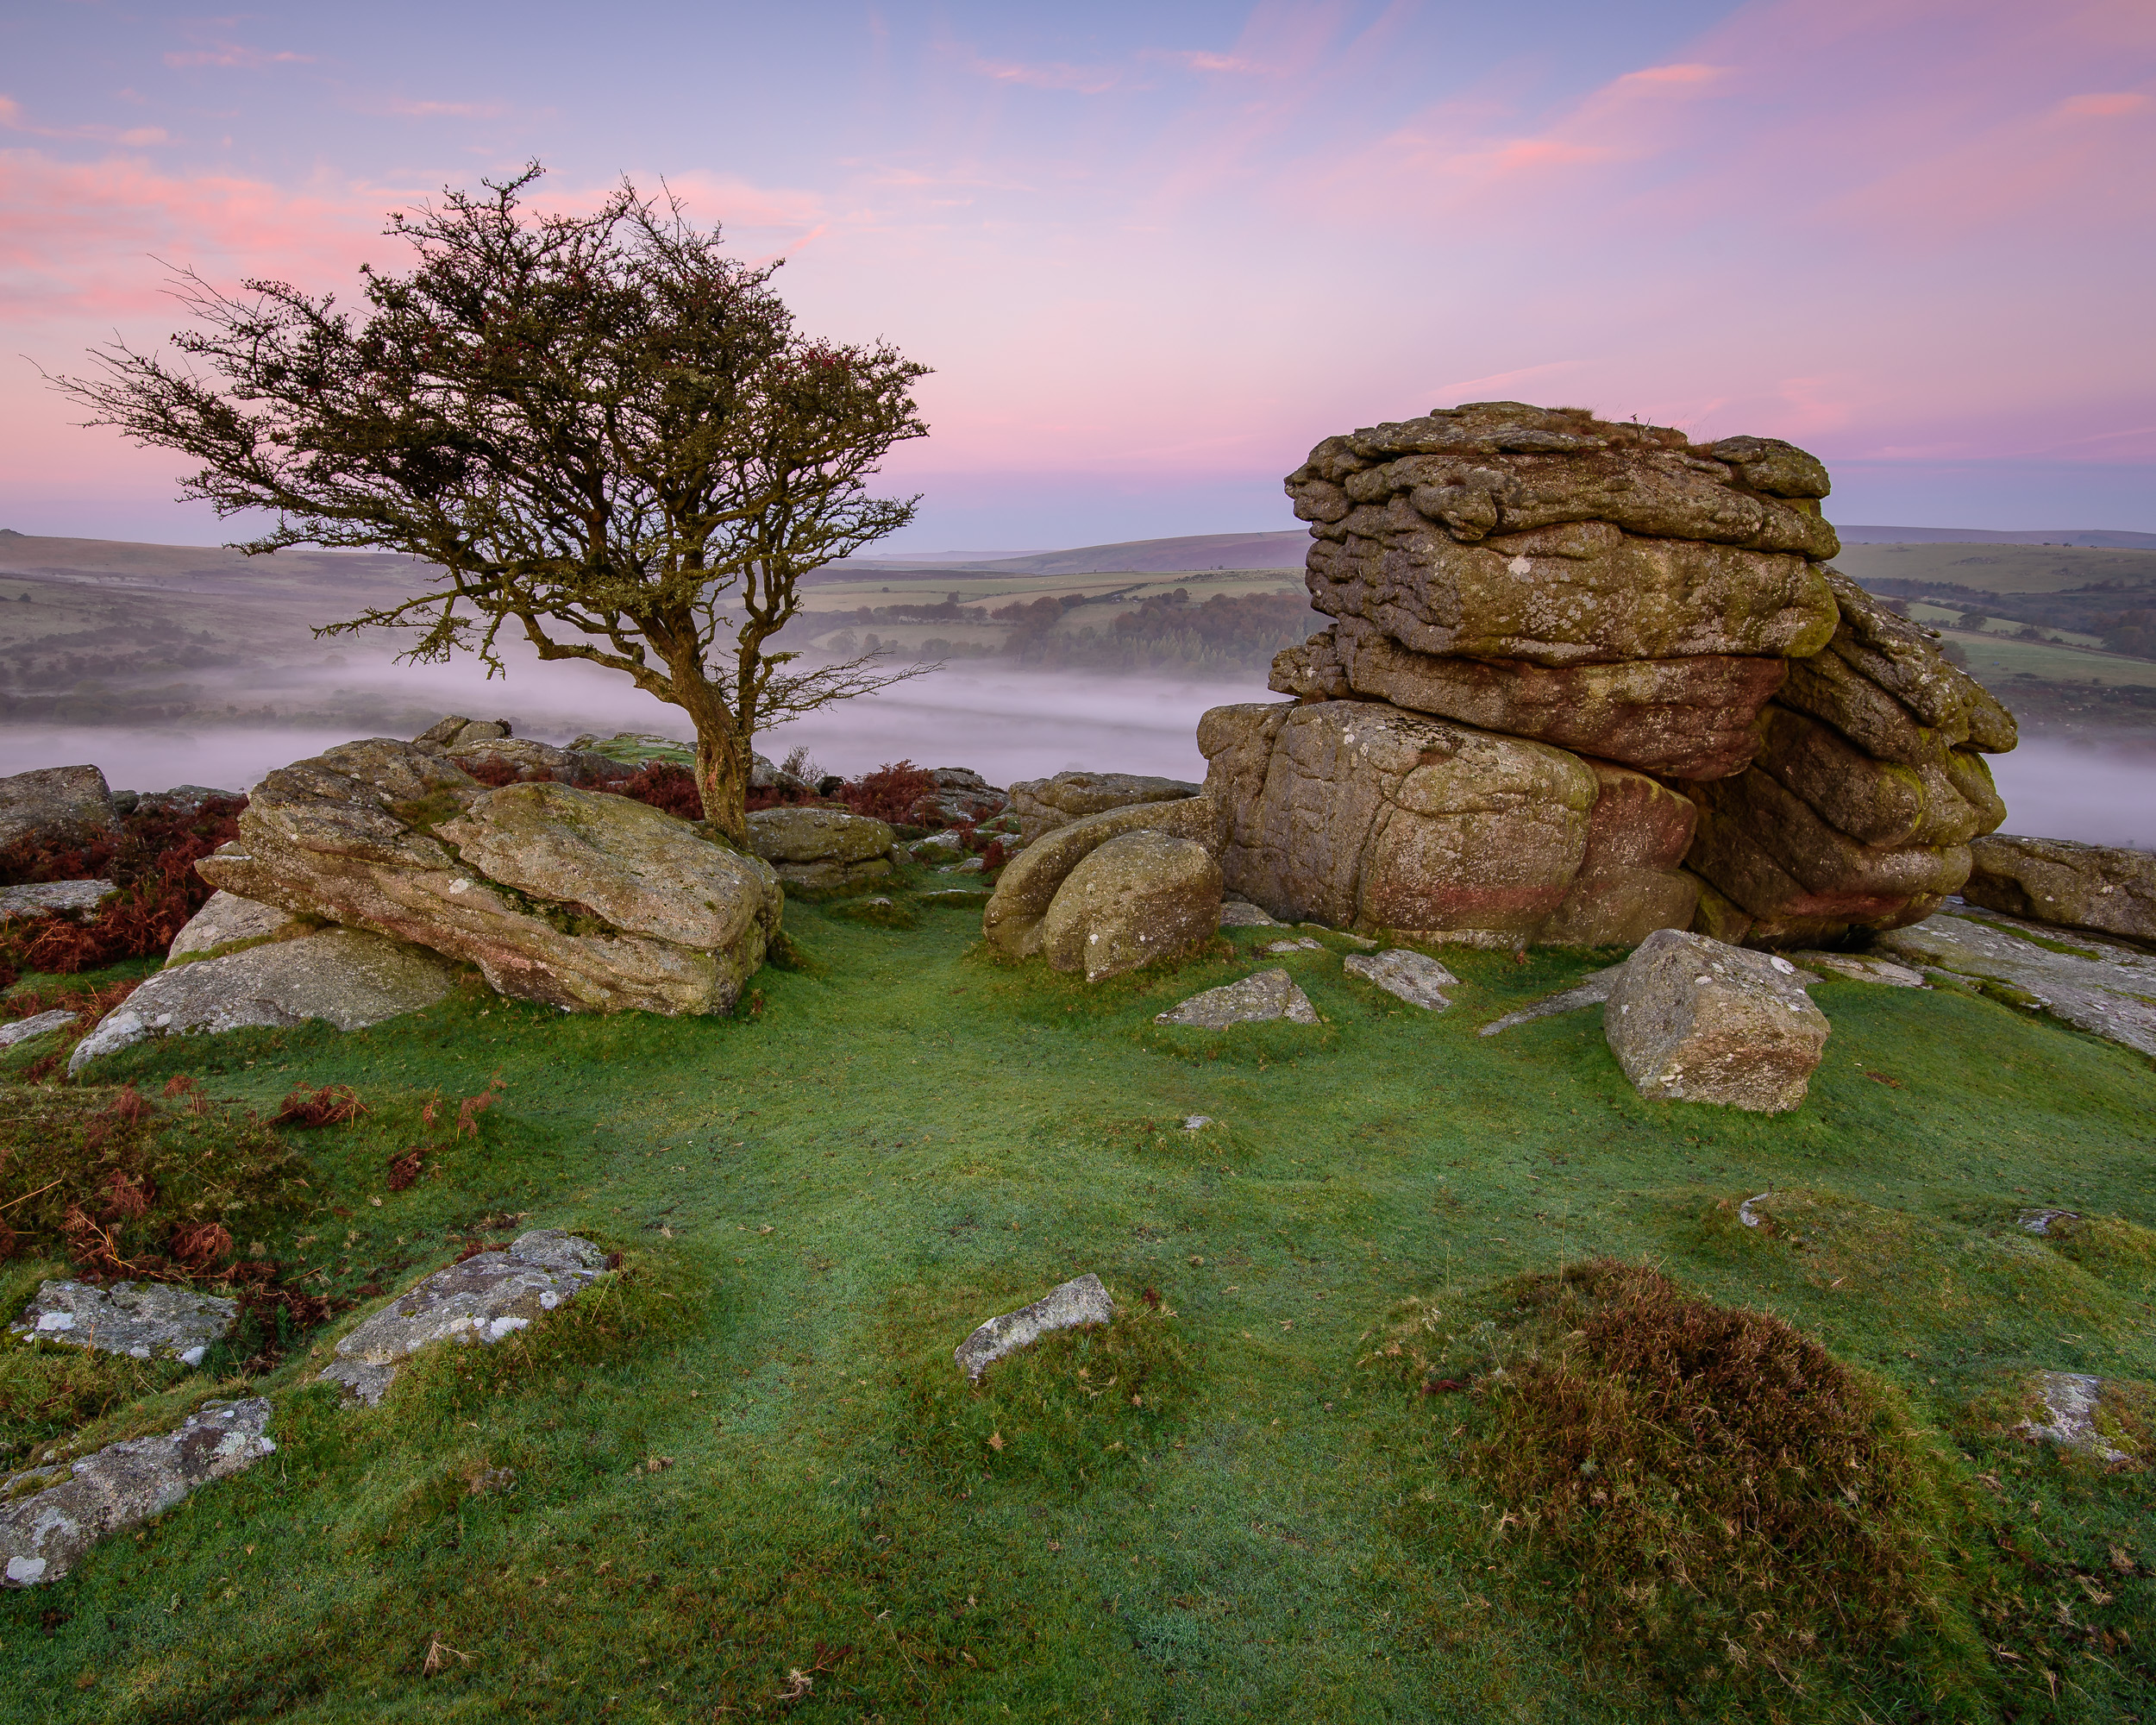 Both the rocks and the tree are great elements to include in your composition. This location is good to shoot at both dawn and dusk.